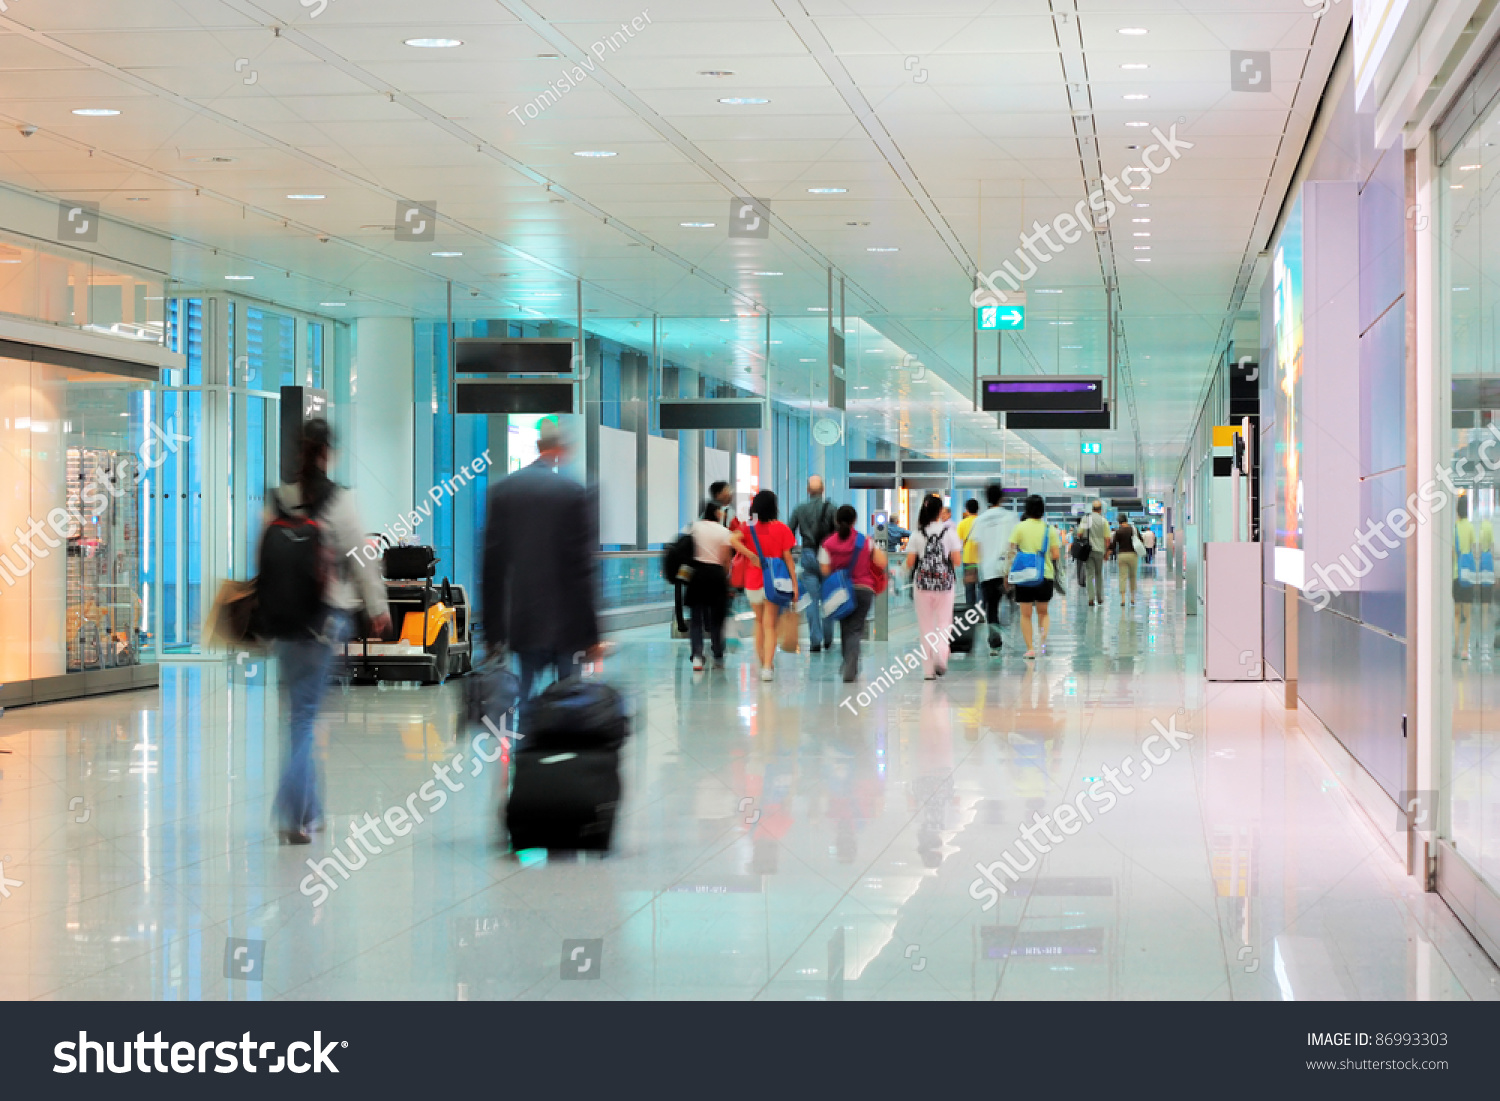 Airport Terminal Stock Photo 86993303 : Shutterstock